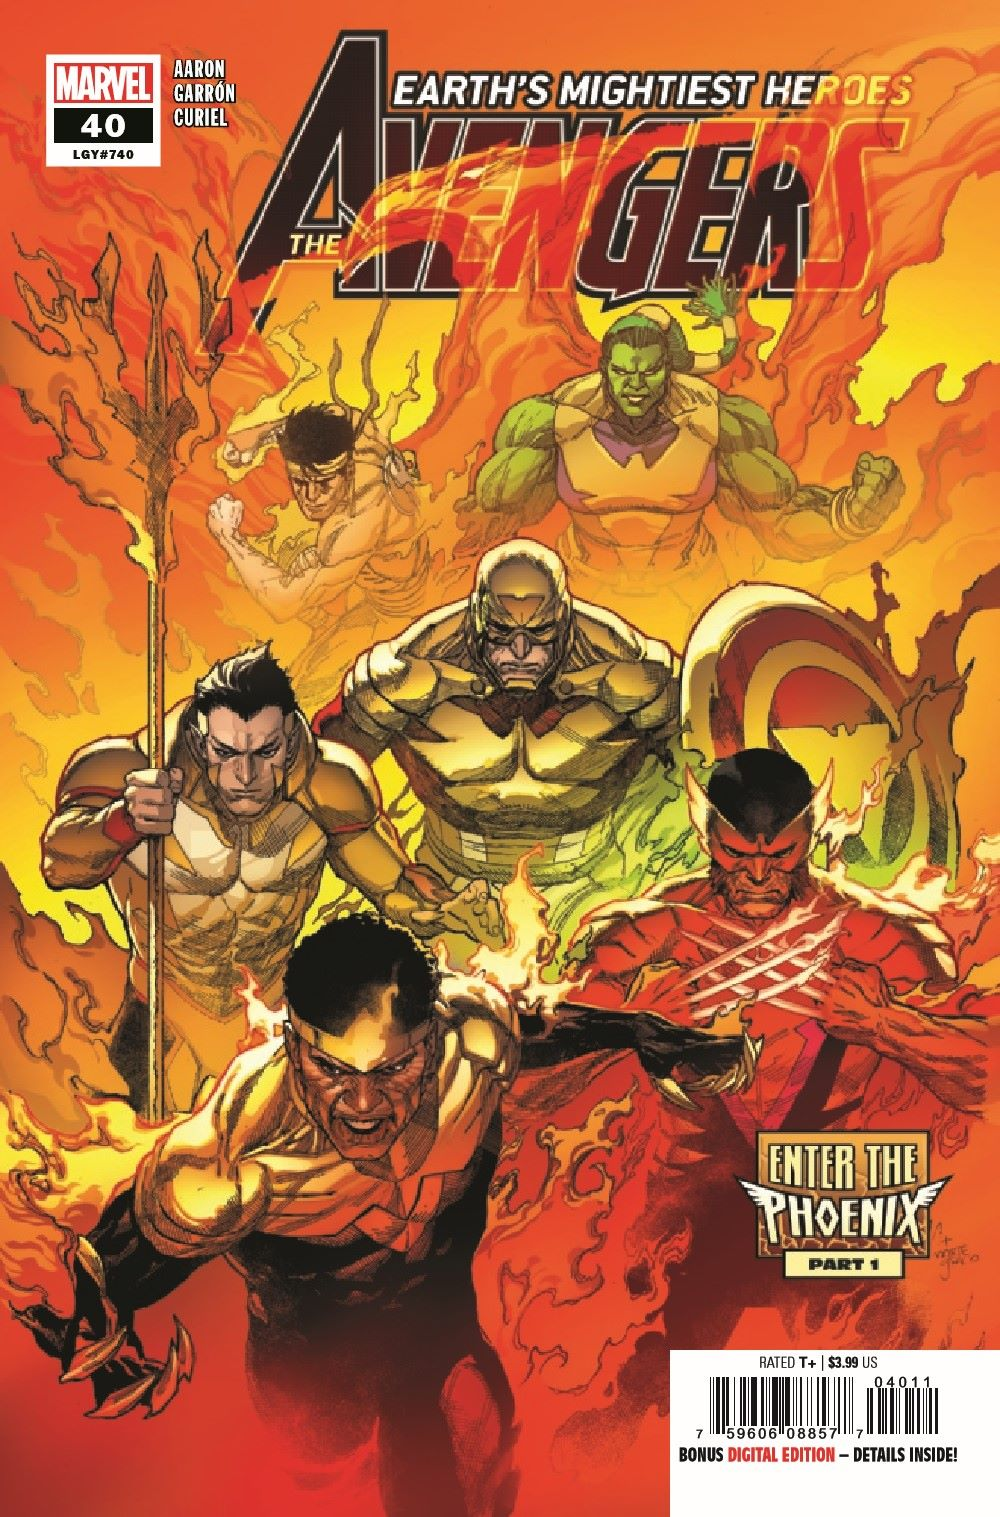 AVEN2018040_Preview-1 ComicList Previews: AVENGERS #40